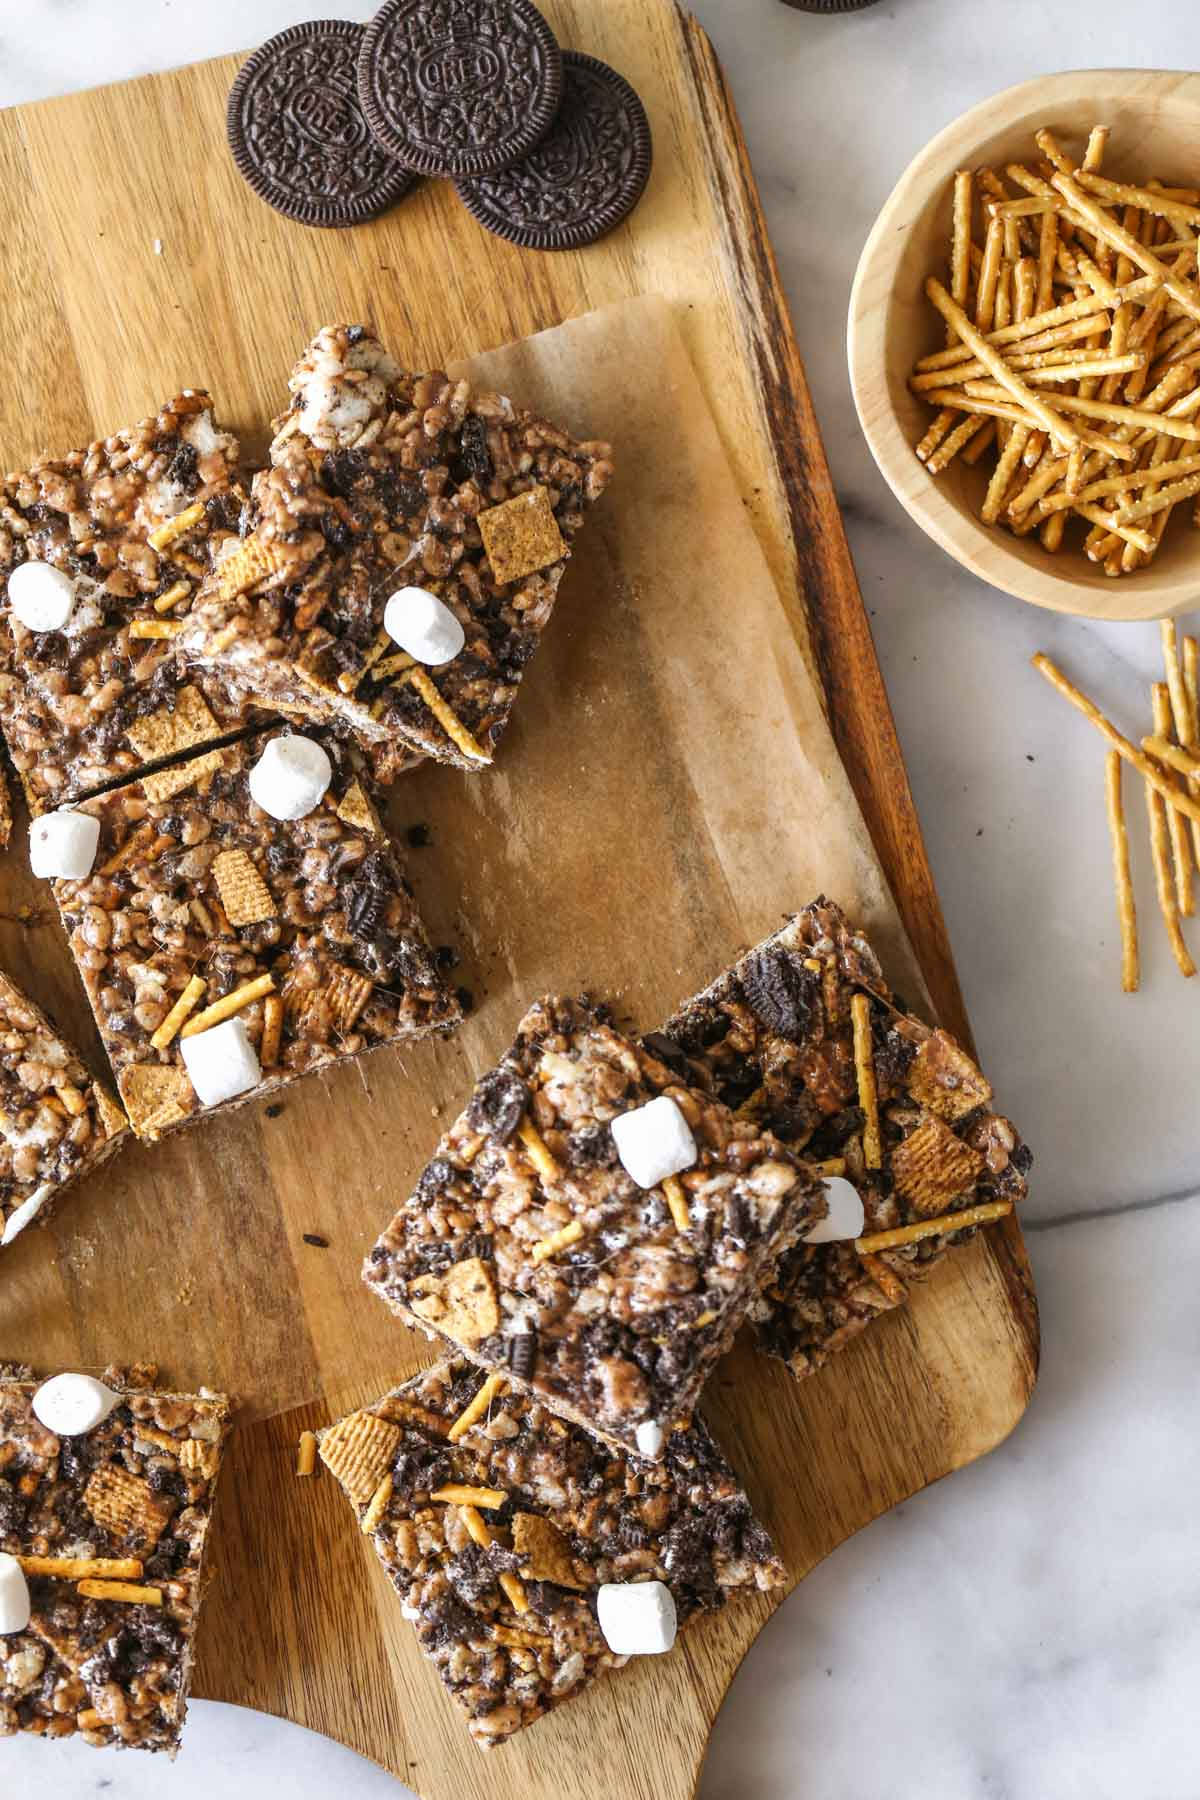 Overhead shot of cut S'more Bars on parchment paper on a wood cutting board, with some whole Oreo cookies and a small wood bowl of pretzel sticks next to it.